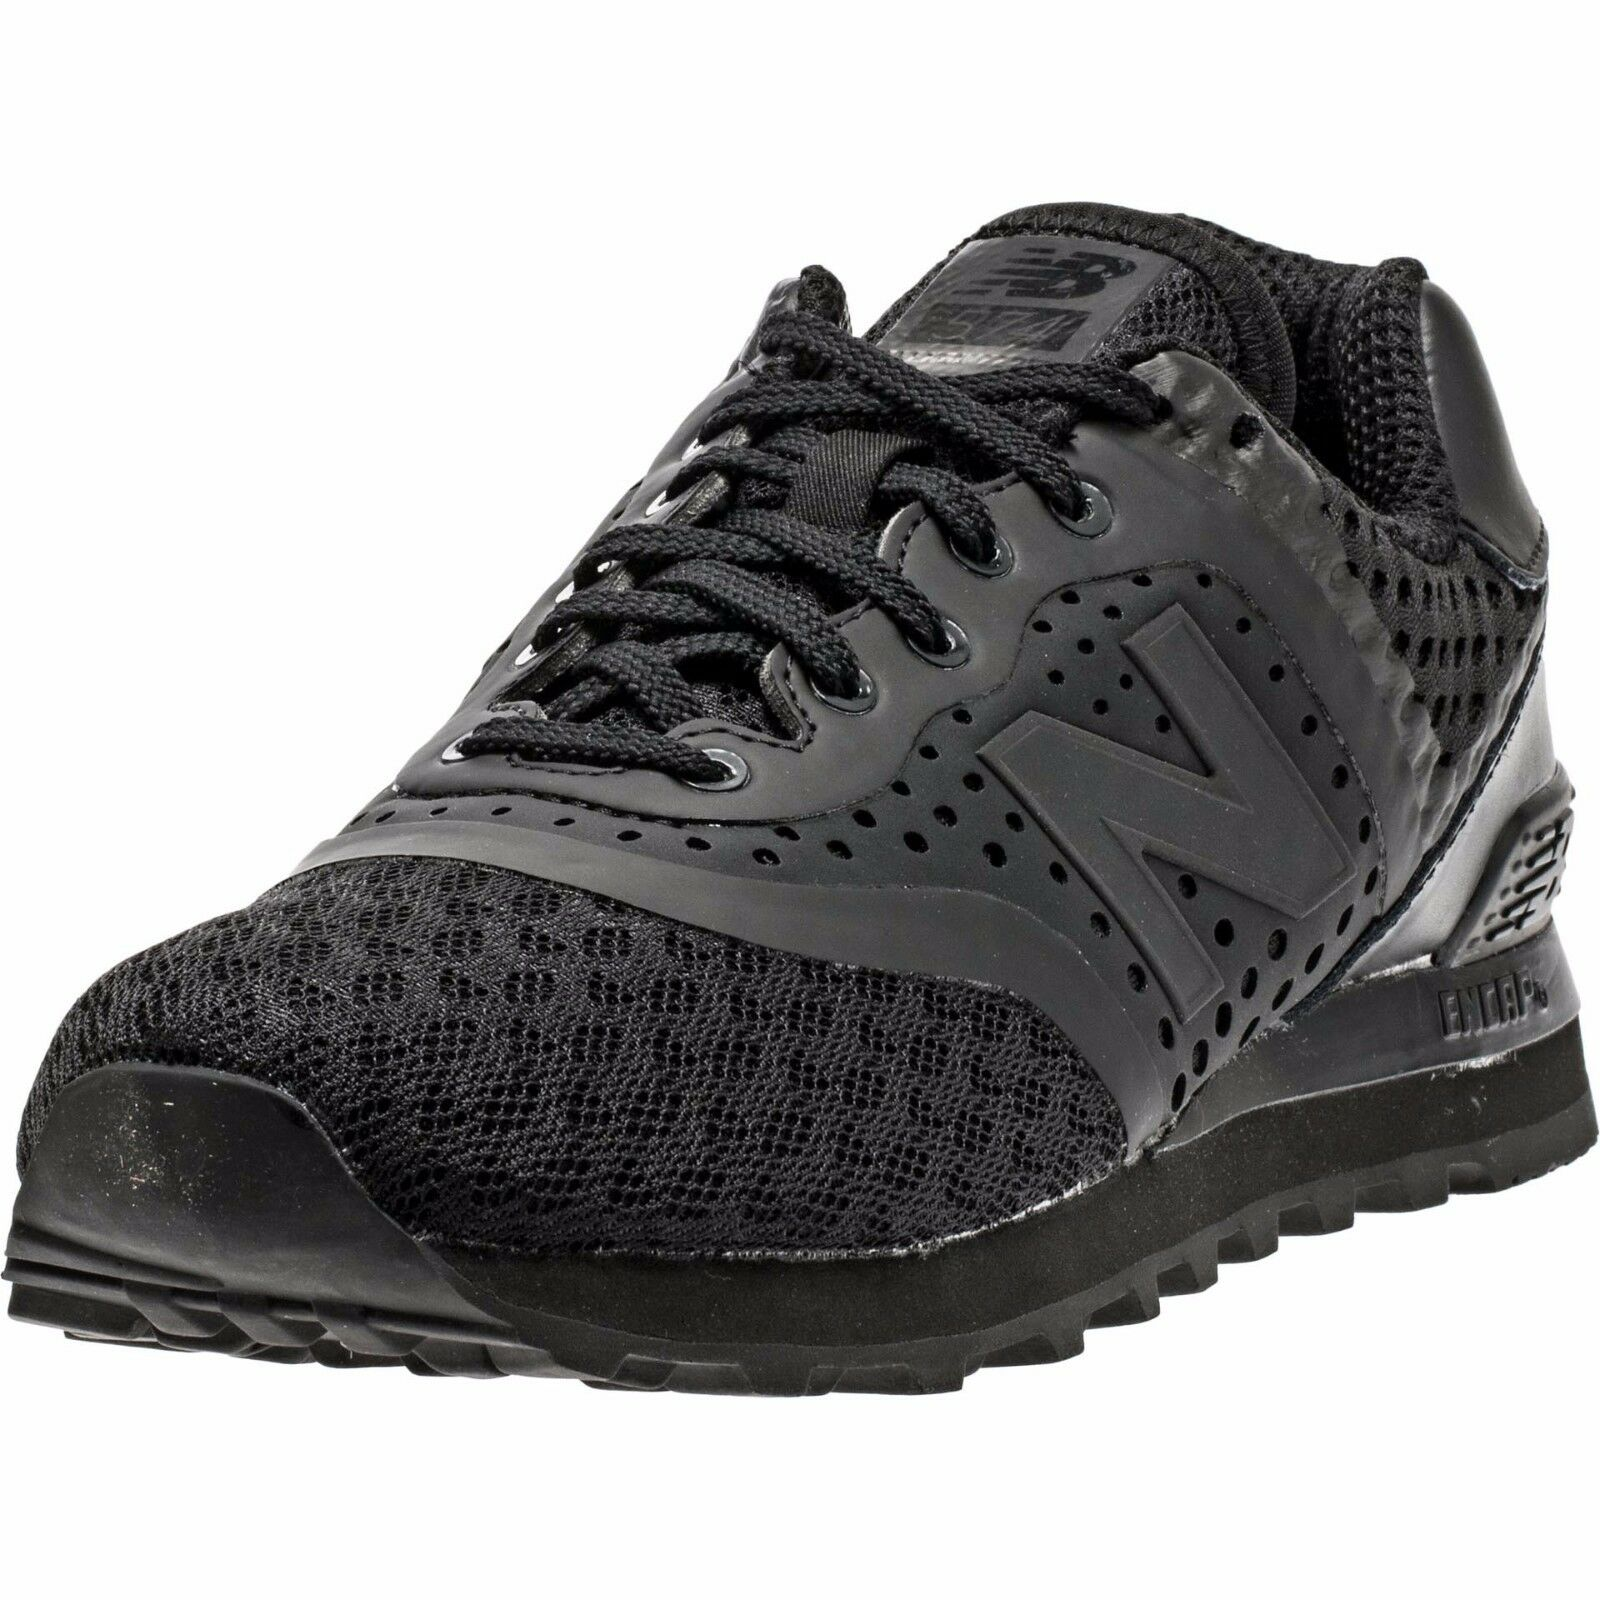 New Balance 574 Re-Engineered Breathe Solid Black Athletic Sneaker